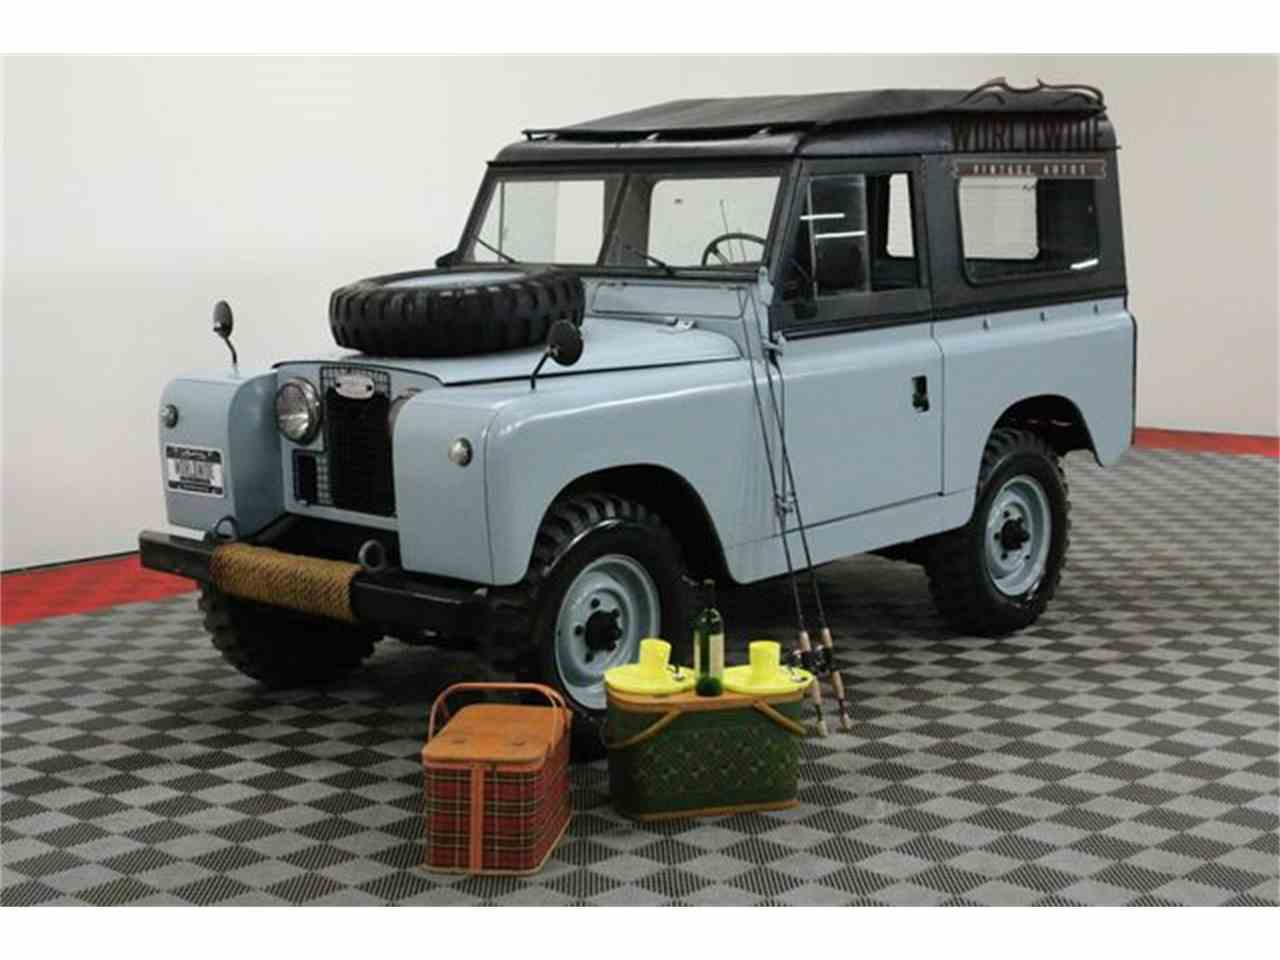 land for bhp rover page team support img landrover vintage post forum sale war group